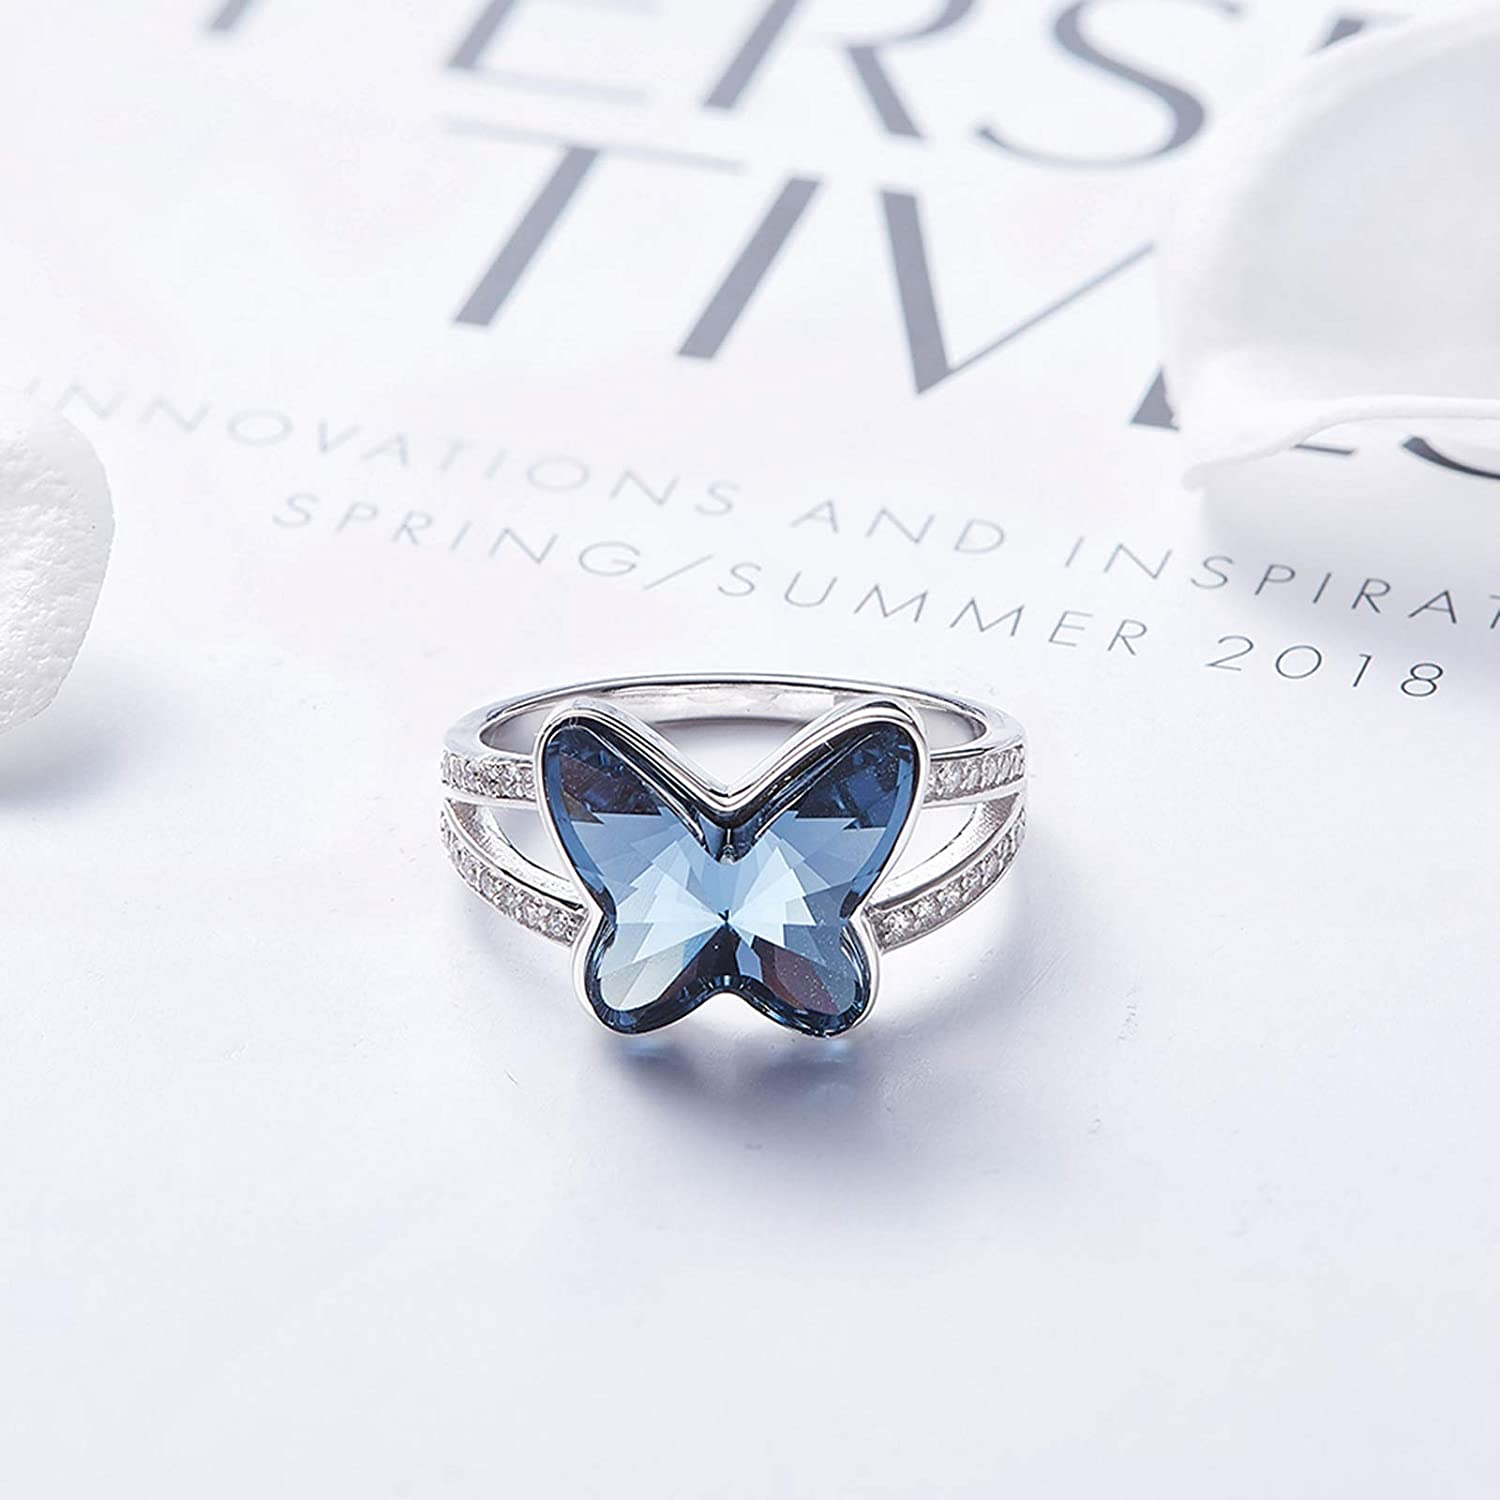 MoAndy 925 Sterling Silver Ring S.W.A Crystal Butterfly Eternity Engagement Wedding Band Ring